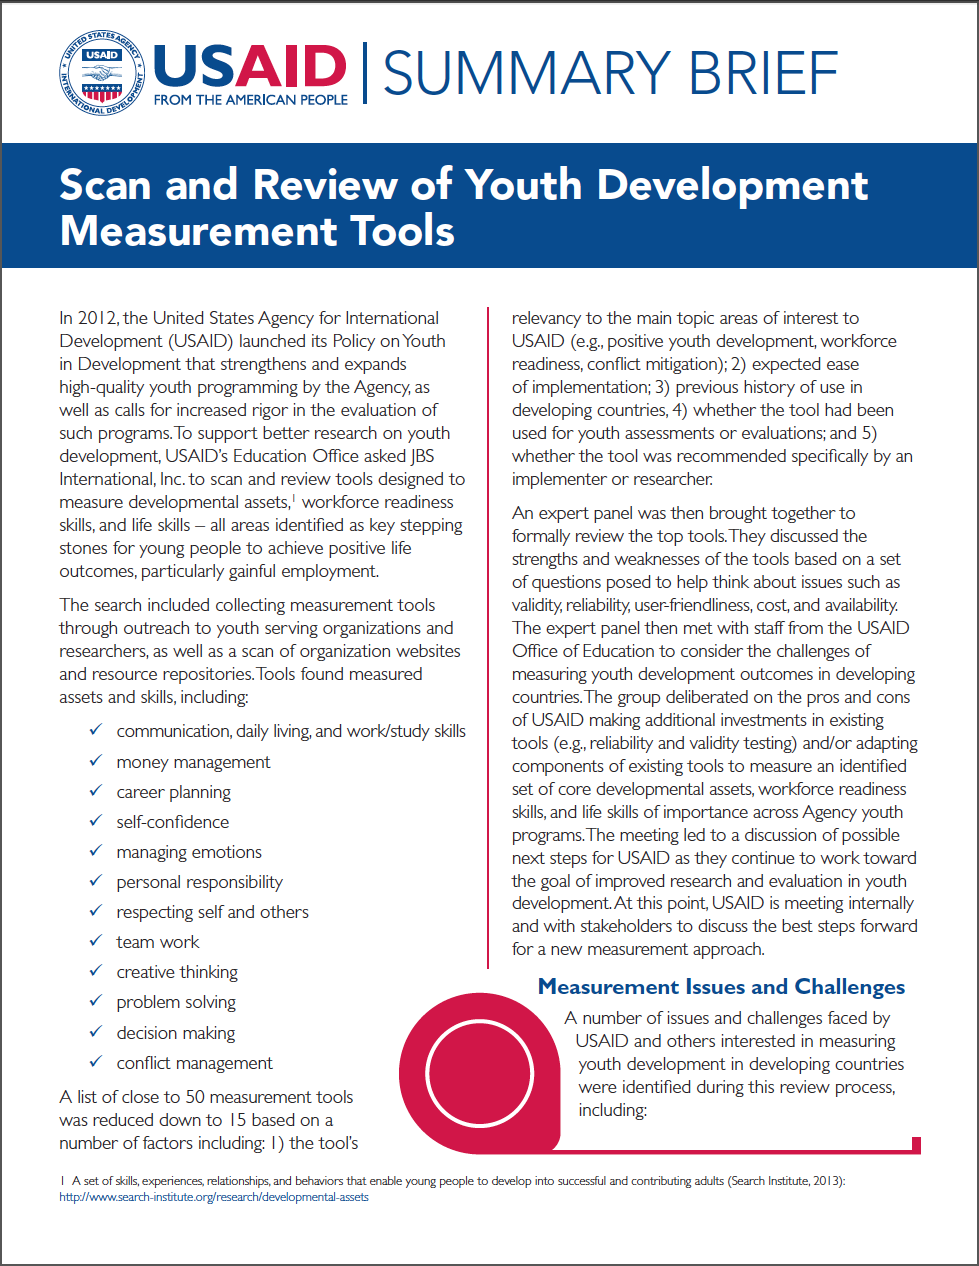 Summary Brief: Scan and Review of Youth Development Measurement Tools